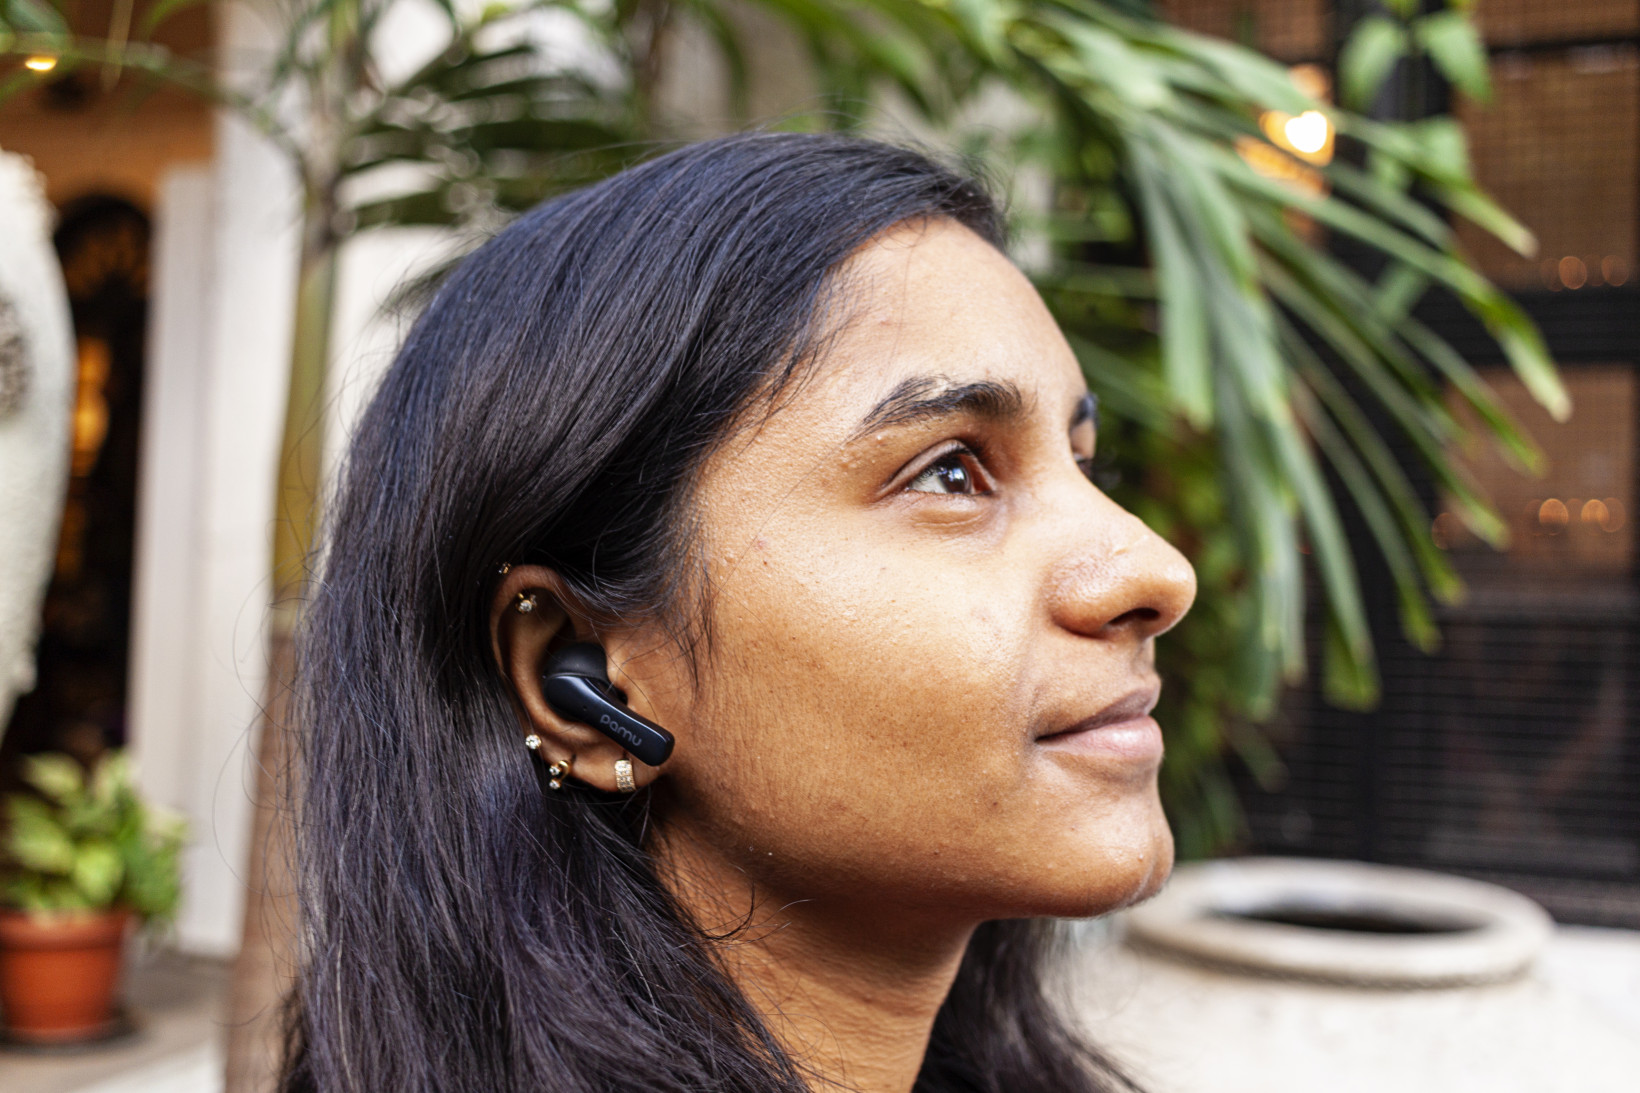 Padmate's PaMu Slide wireless earphones sound good with most genres of music, and last nearly 10 hours on a charge